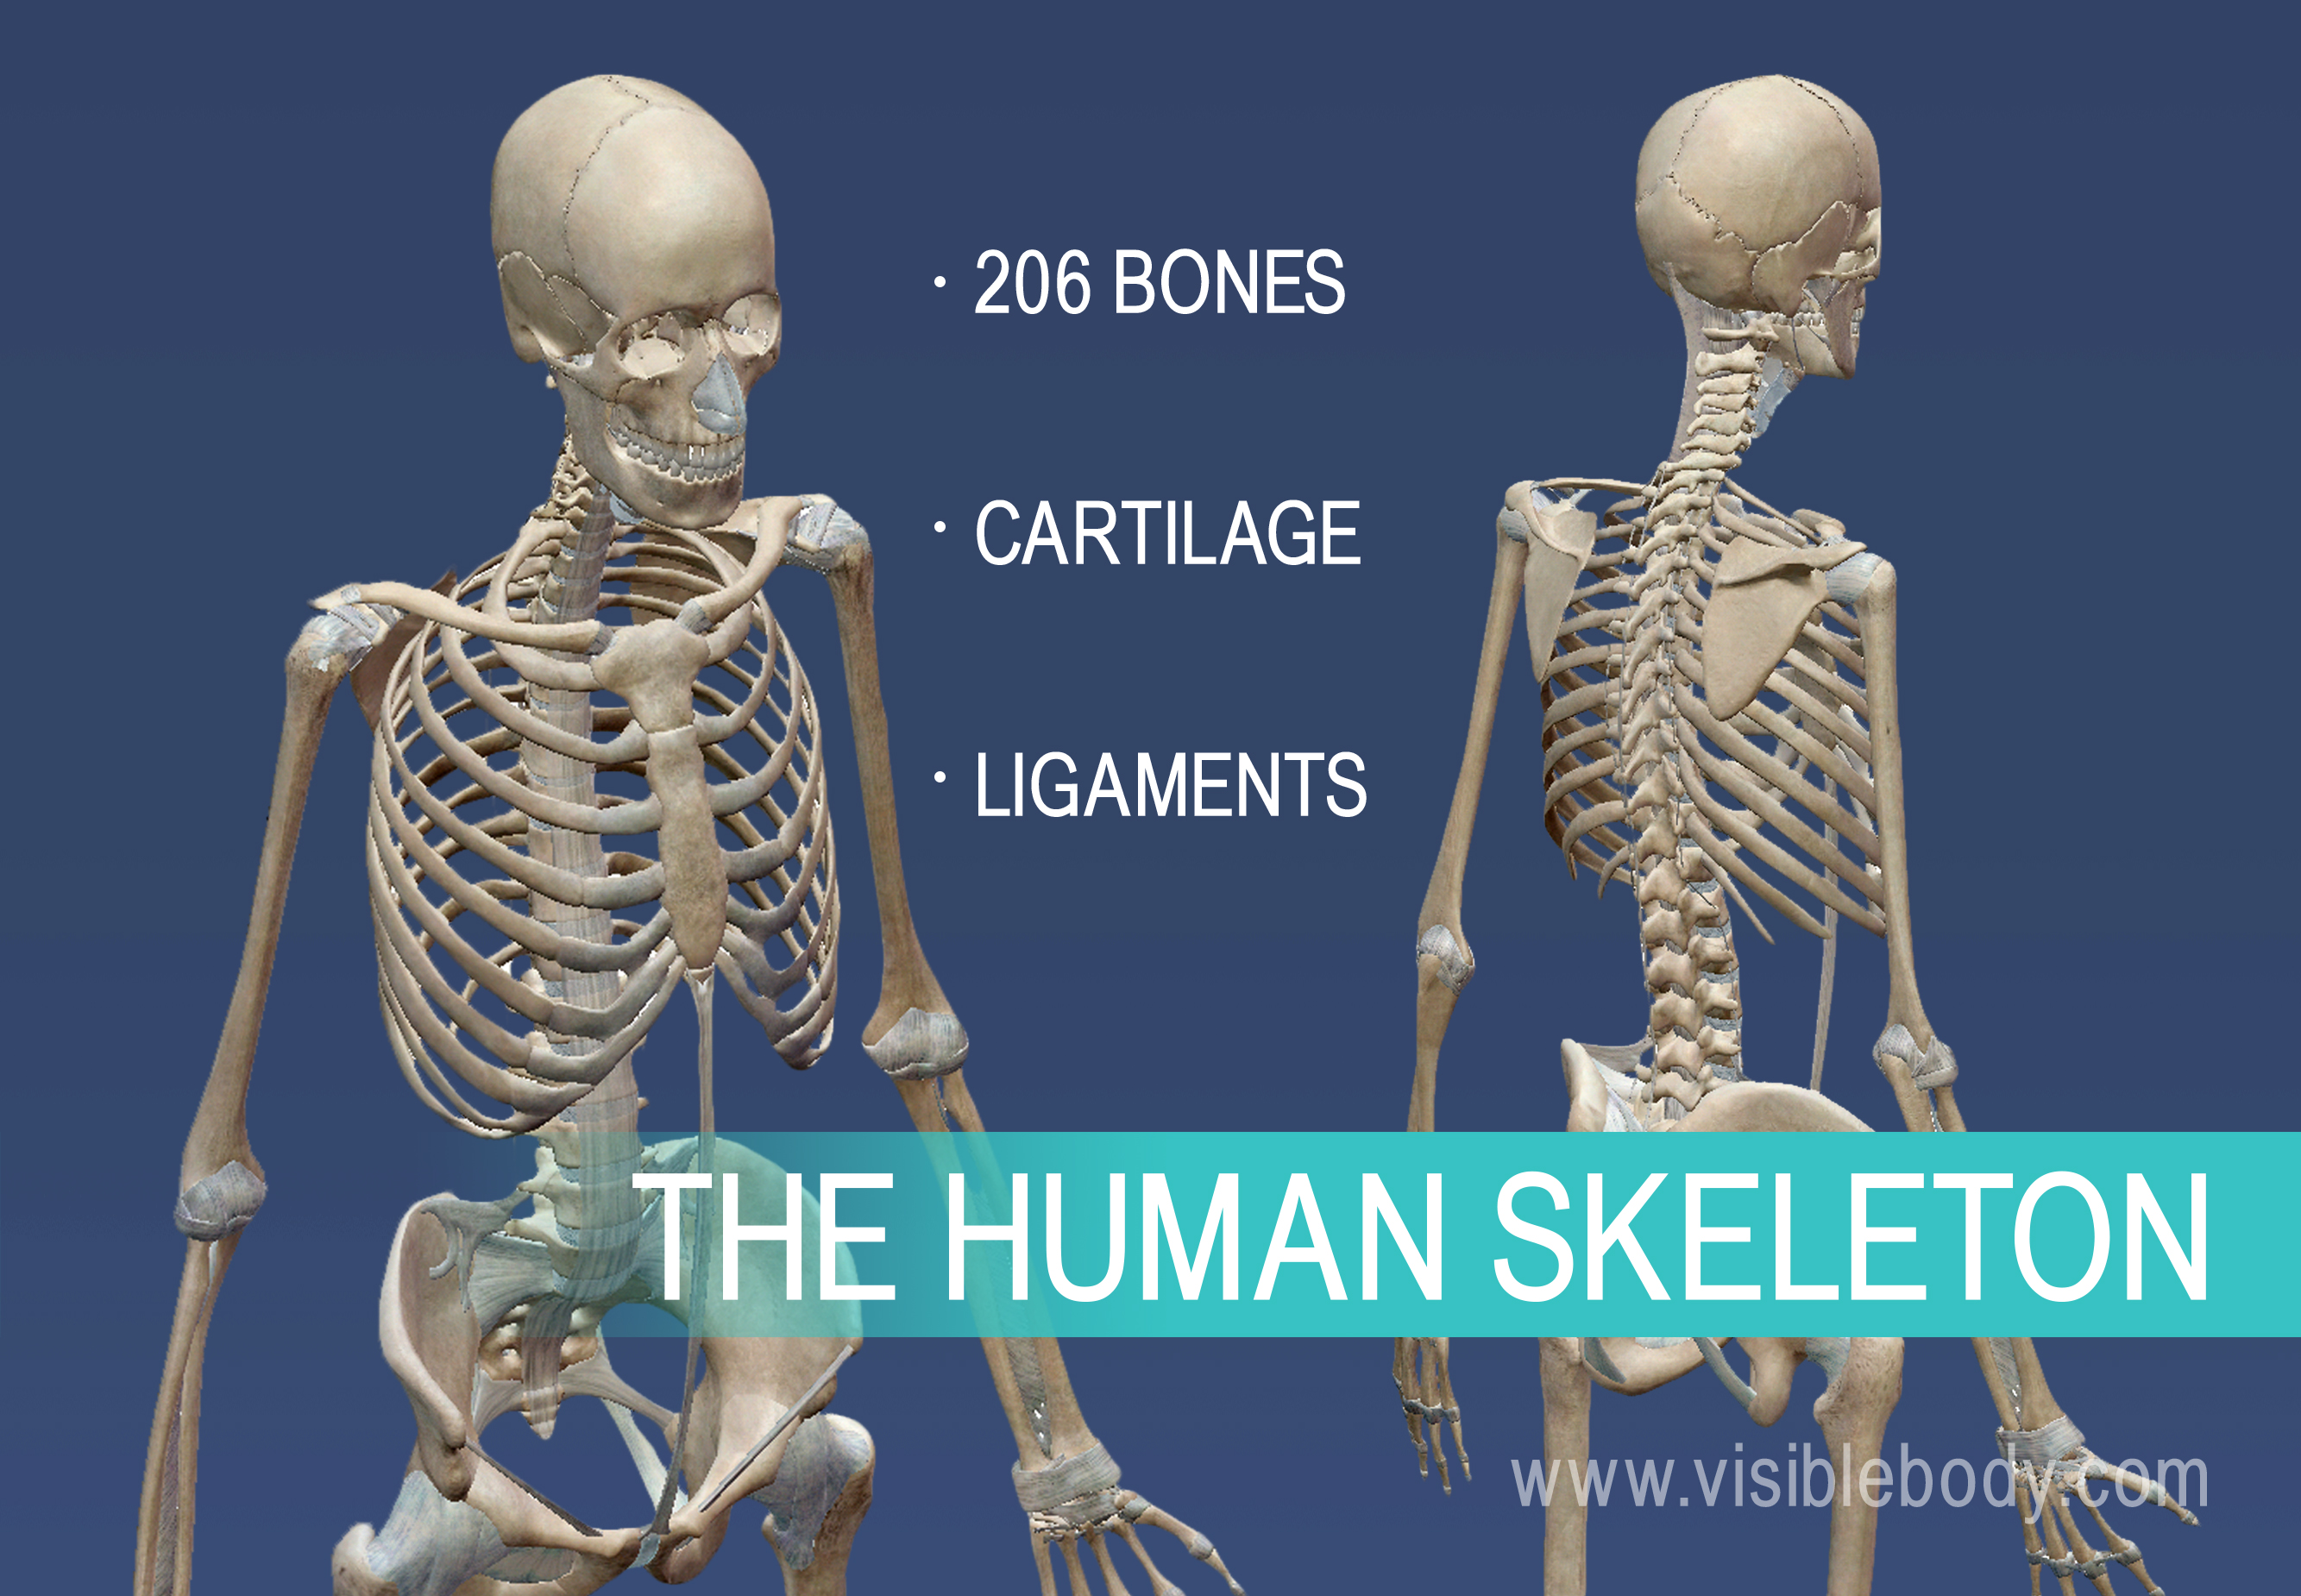 The skeletal system is composed of 206 bones, cartilage, and ligaments